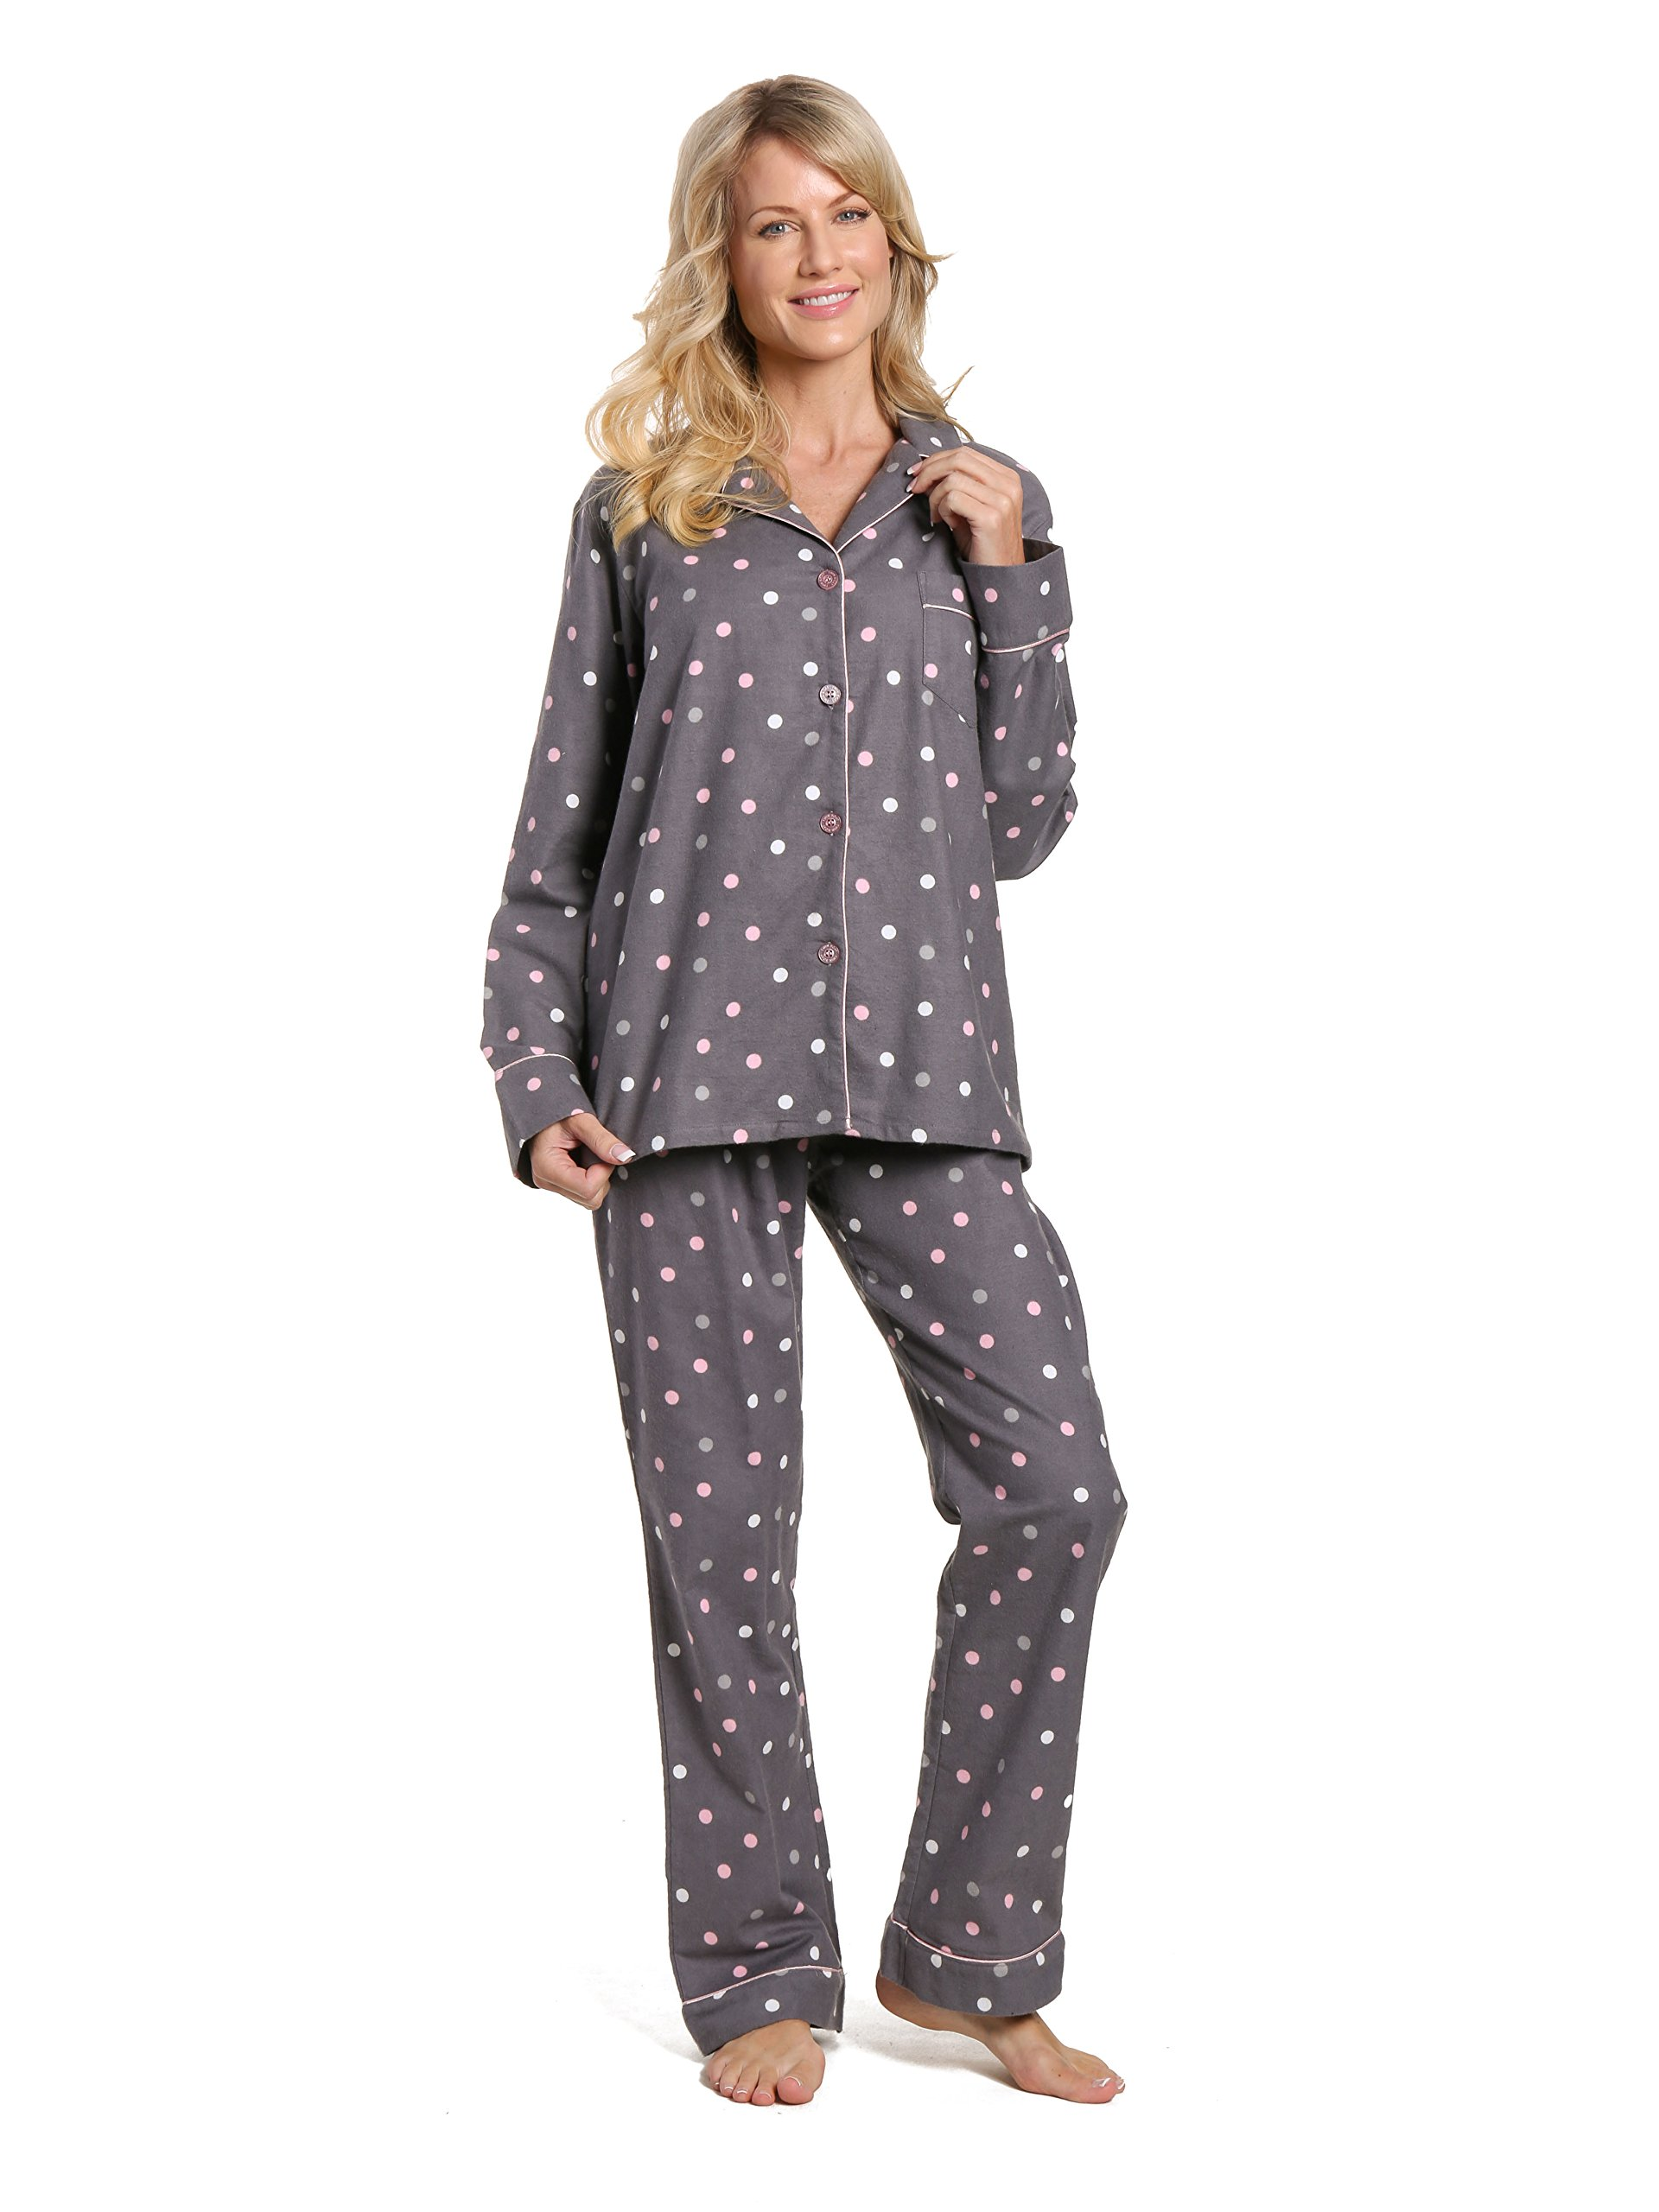 buttom in comforter reviews pajama long customer womens bl best night most women comfortable sleeve by pajamas shirts pink helpful top rated sets s l twips down nora pcr